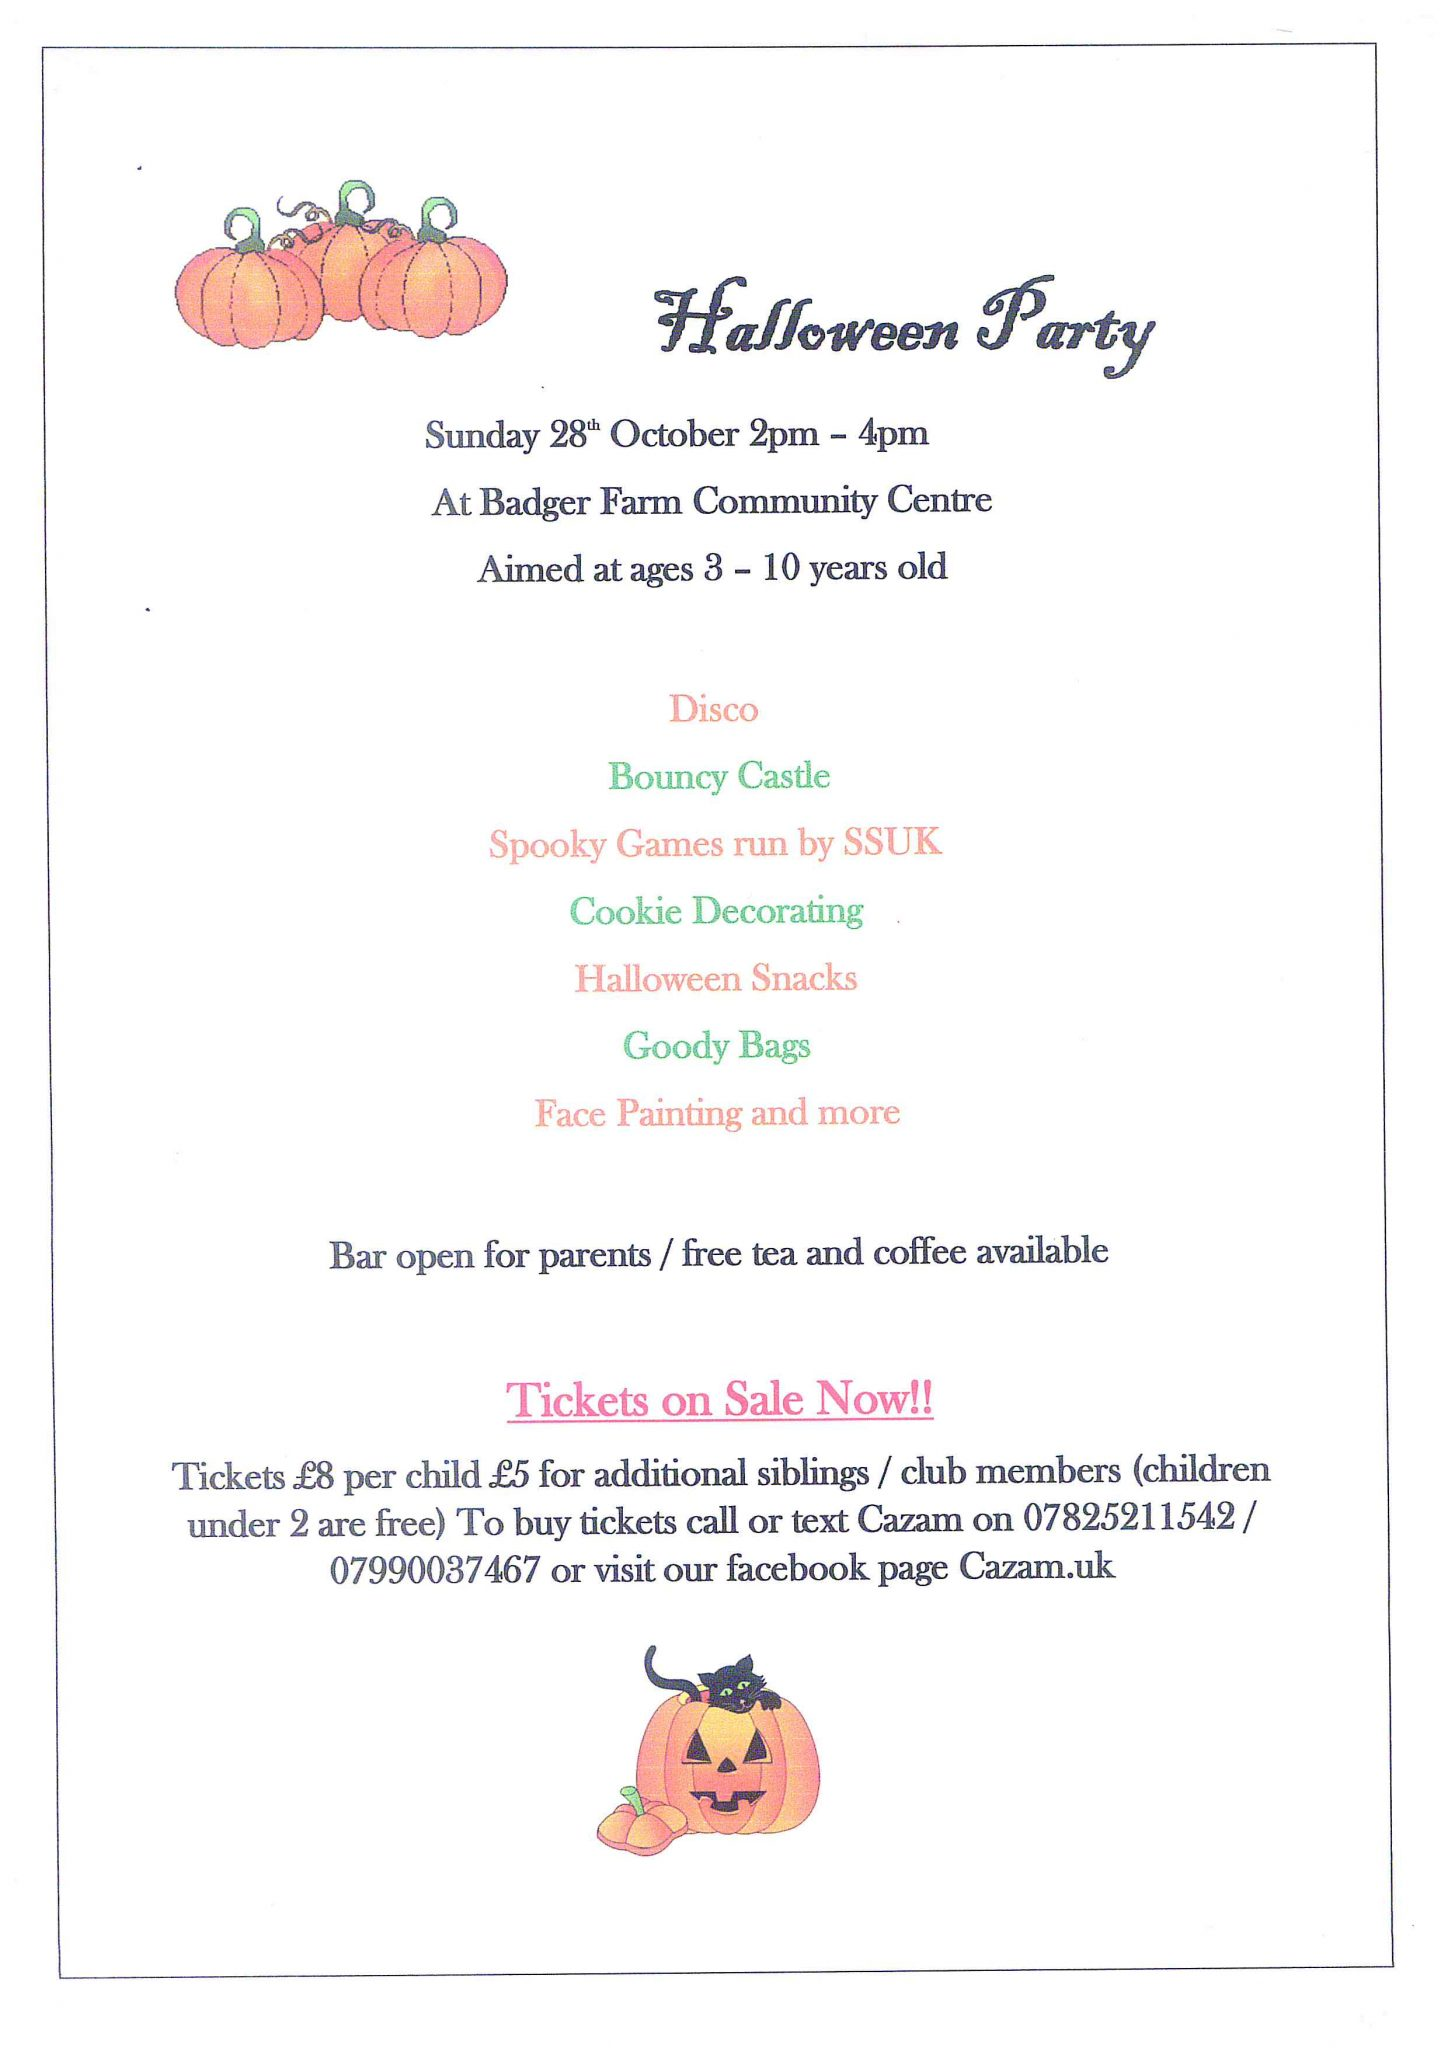 Details of Halloween Party on 28 October